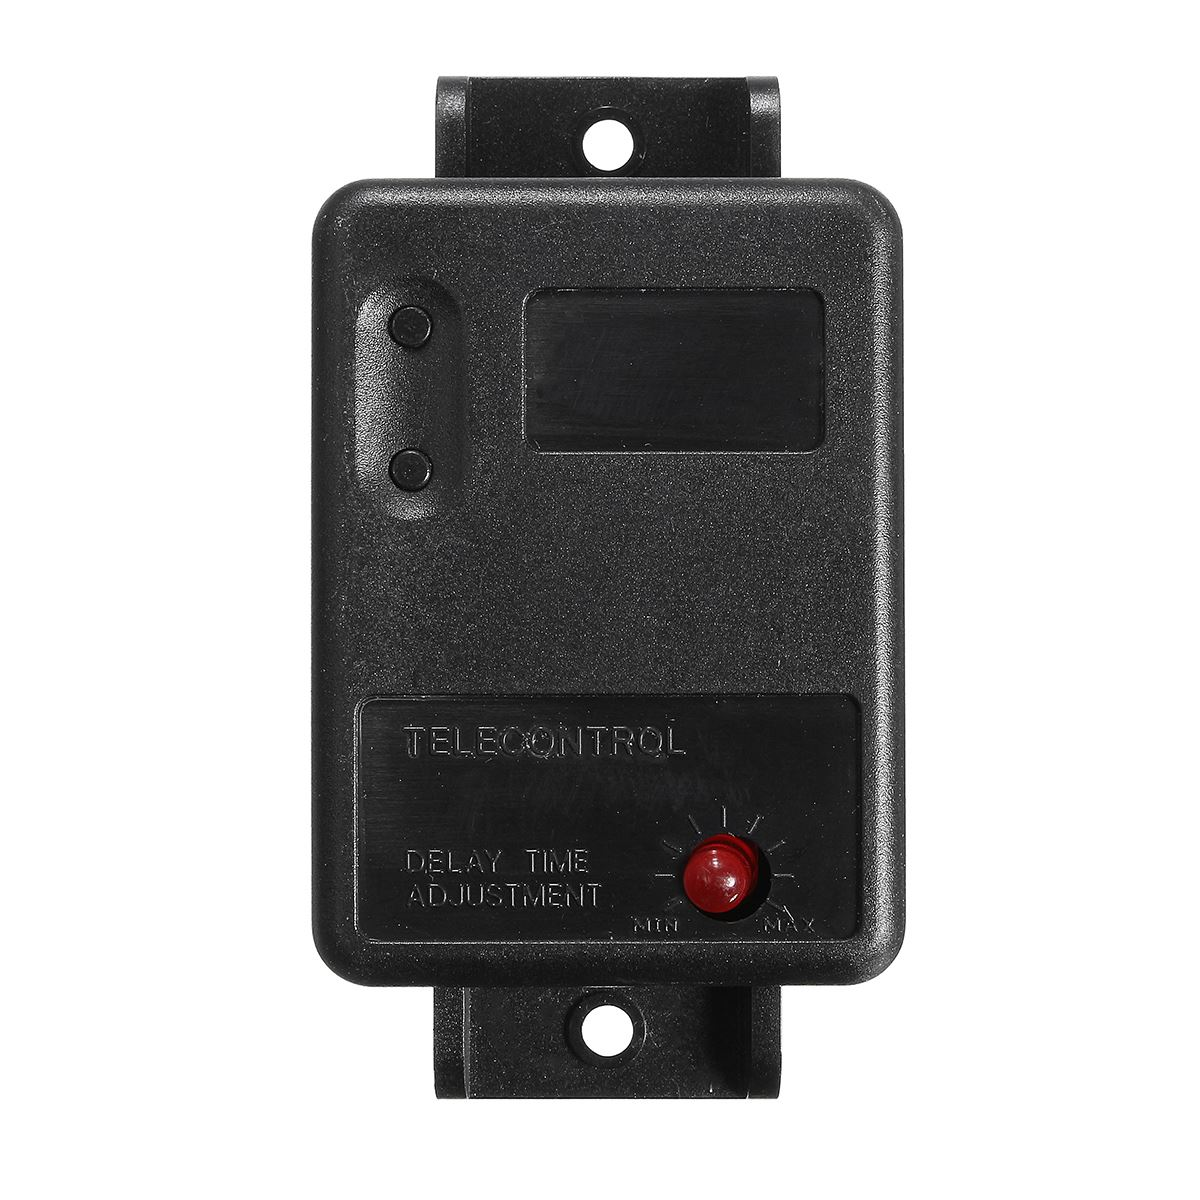 DC12V 1CH 315/433MHz Wireless Time Delay Relay RF Remote Control Switch Receiver dc 12v led display digital delay timer control switch module plc automation new